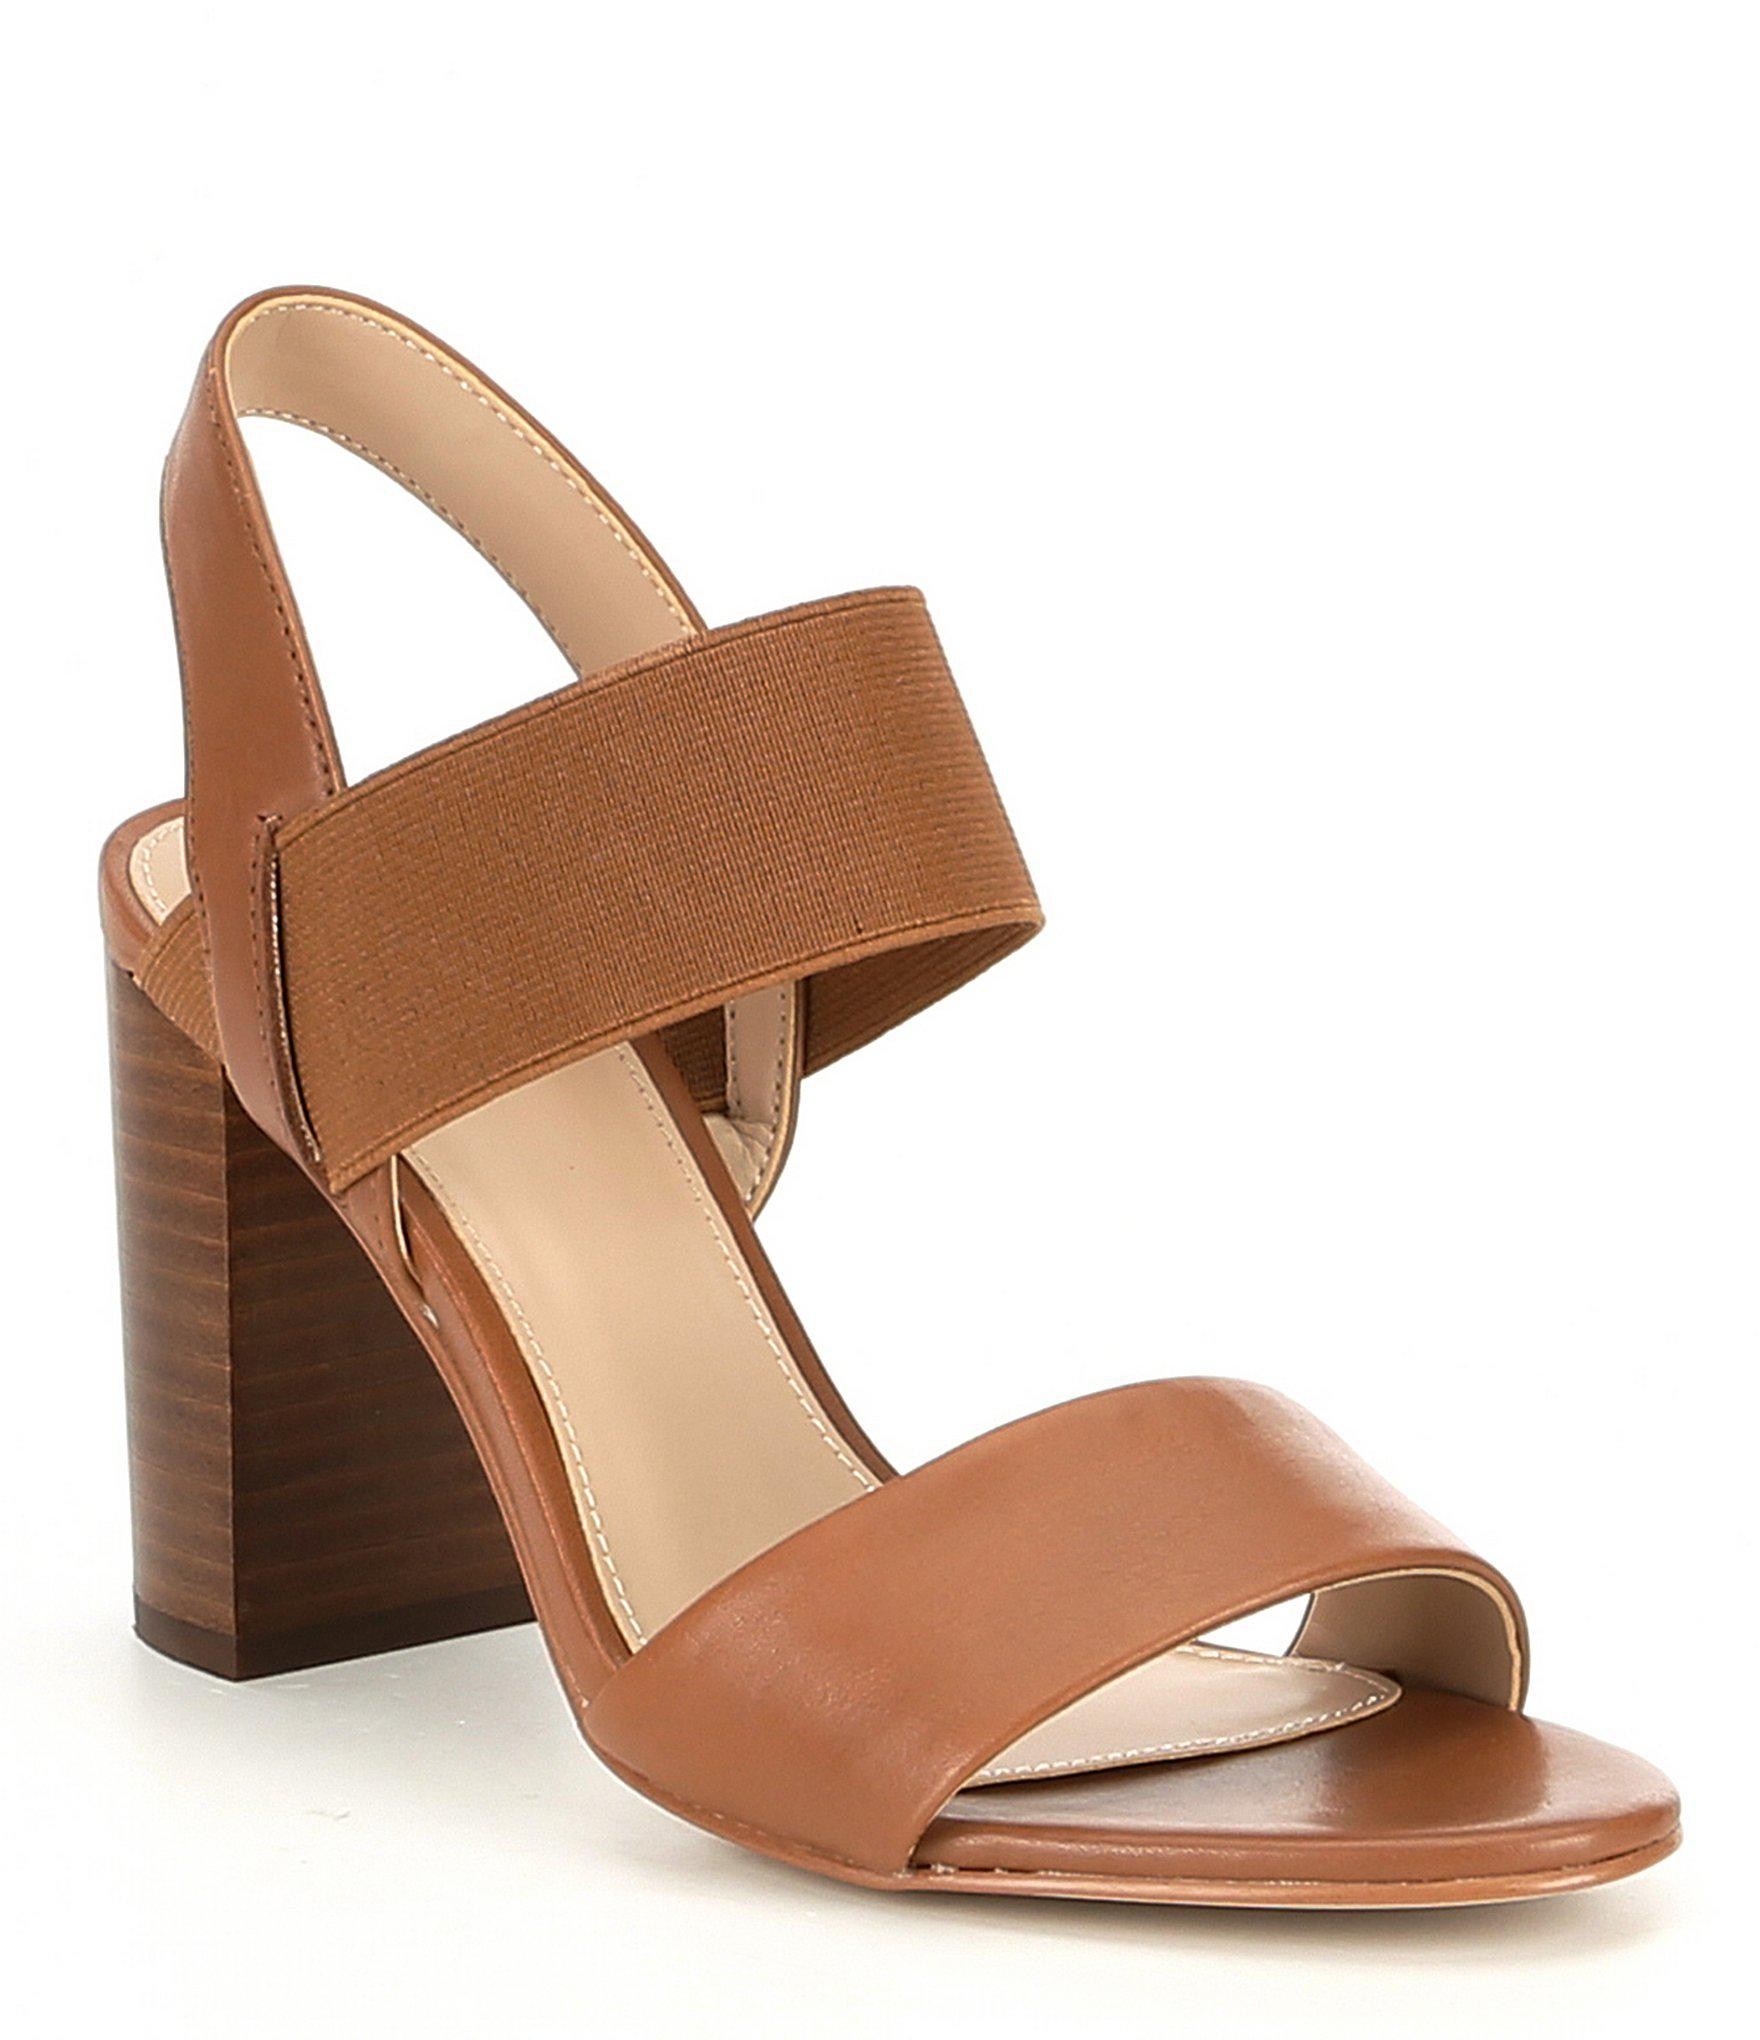 c8b6a24f252 ALDO Mullyra Leather Dress Sandals in Brown - Lyst